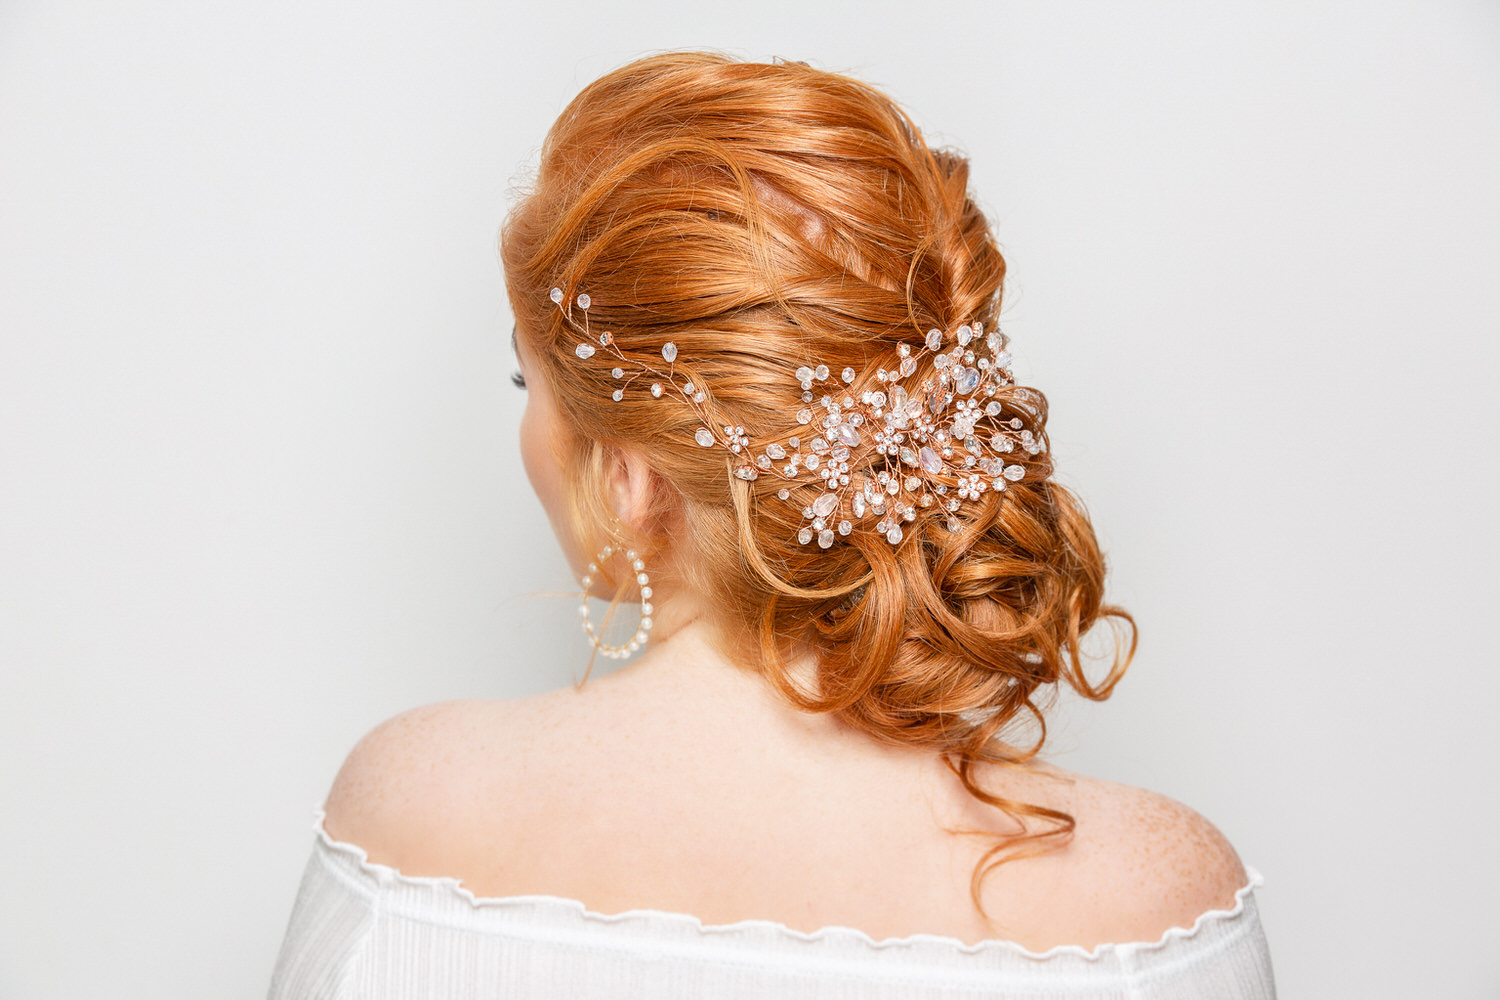 red hair bride back of her head with hair clip in